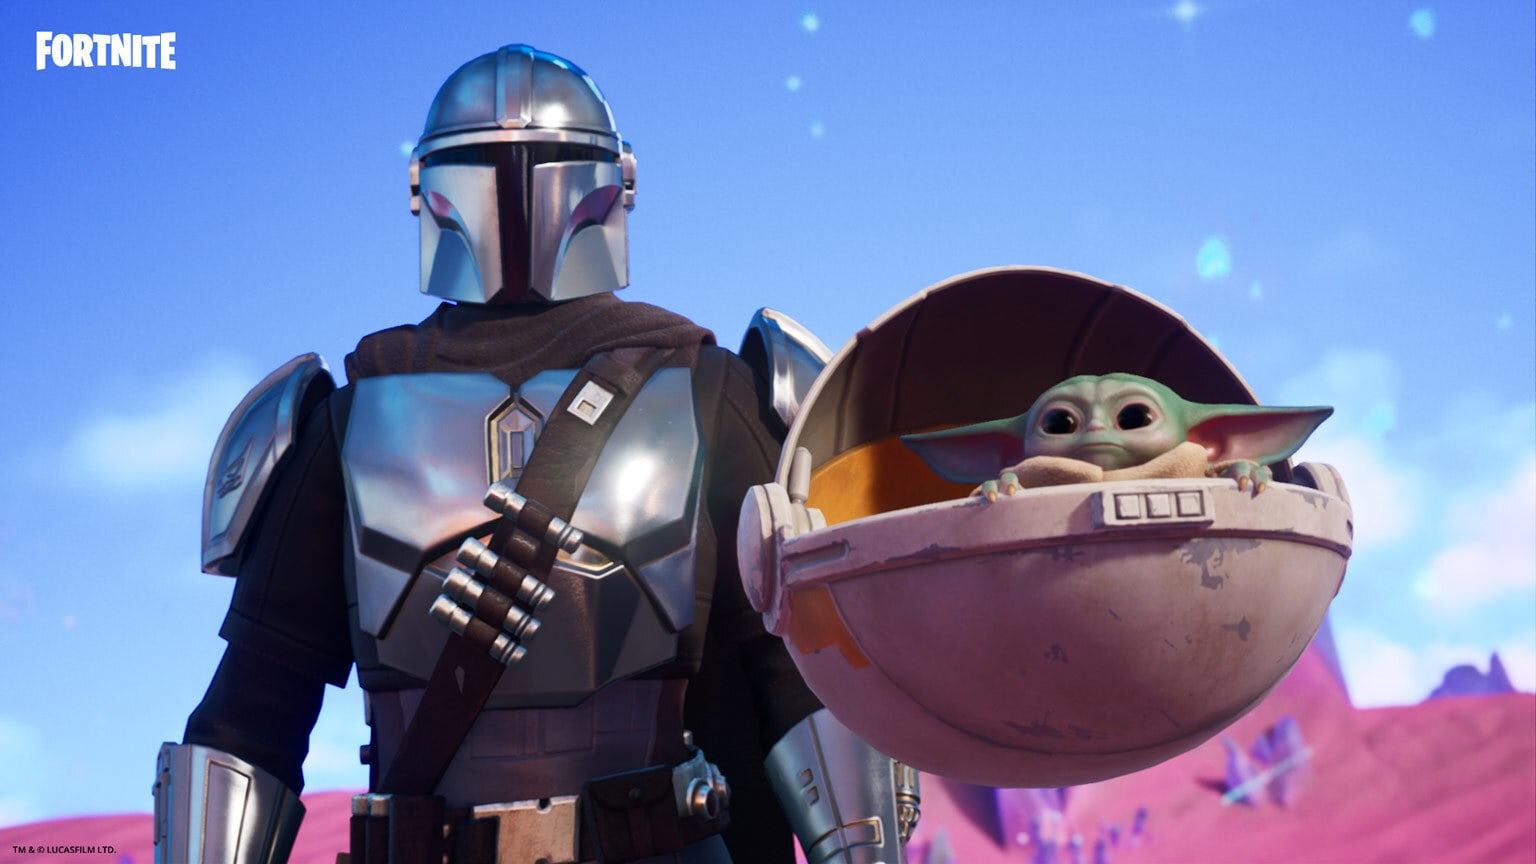 The Mandalorian Joins the Hunt in a New Season of Fortnite